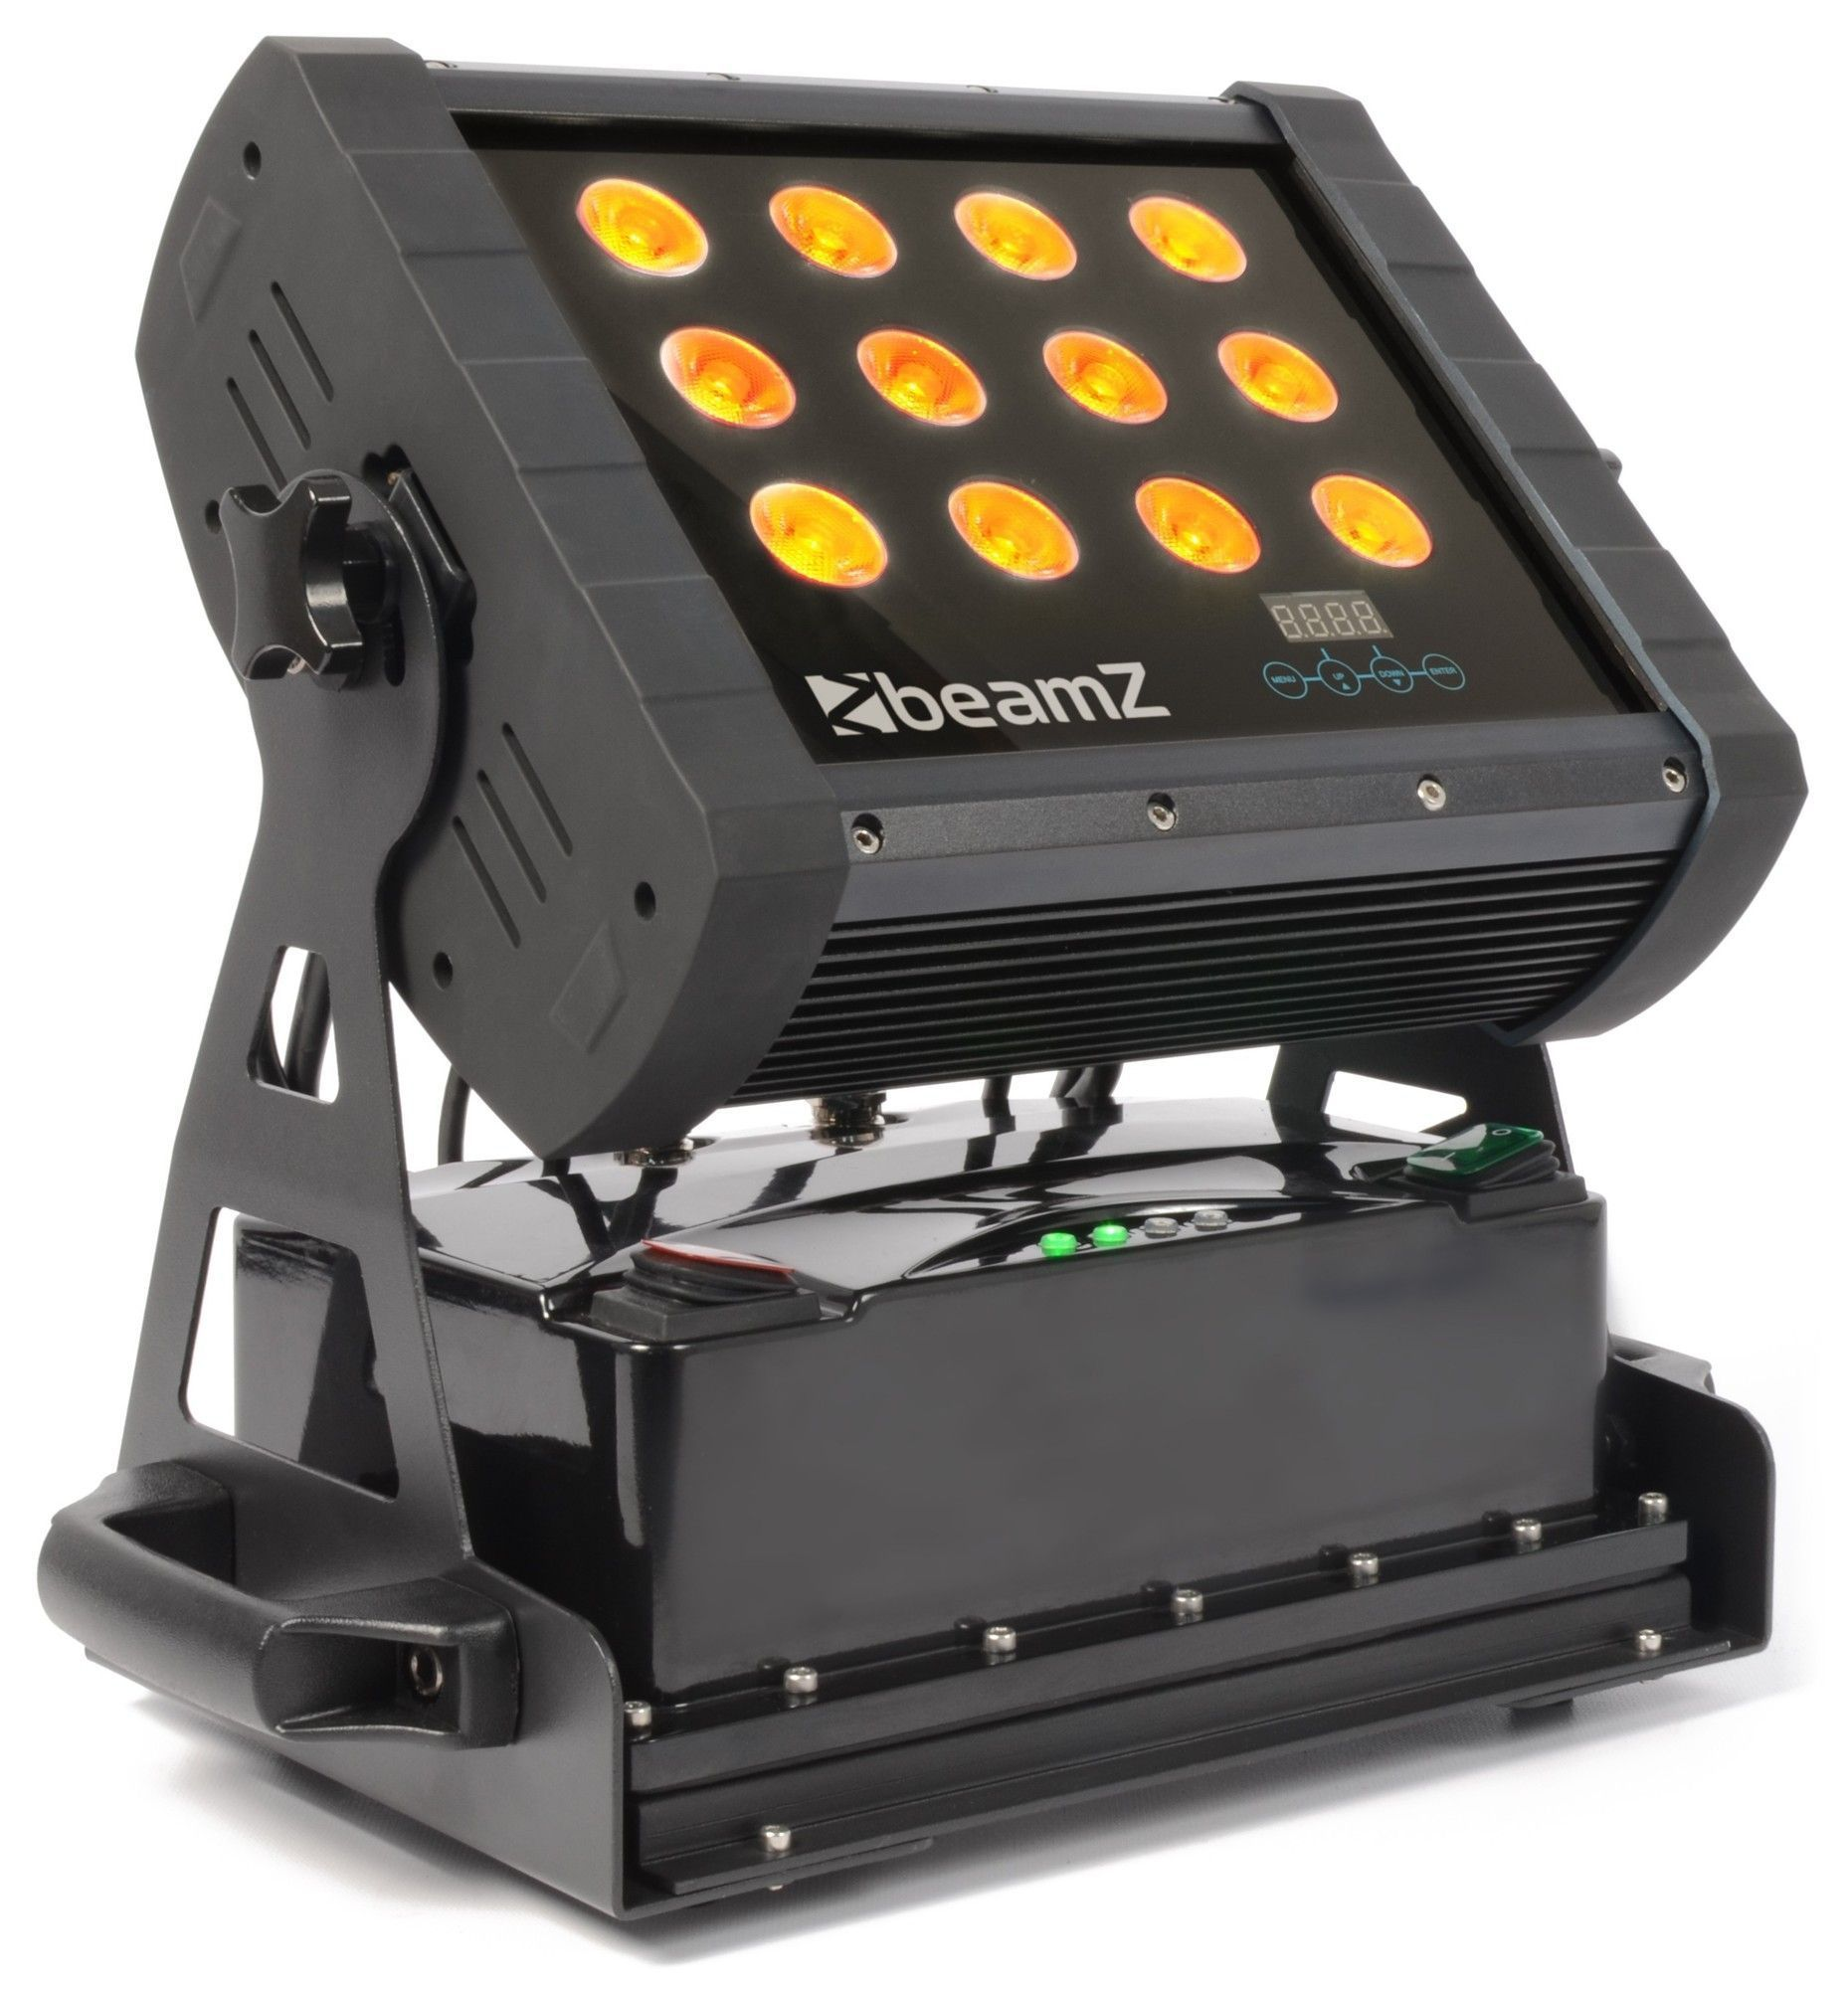 BeamZ WH128WI Wall Washer met accu 12x 8W QUAD LEDS IP65